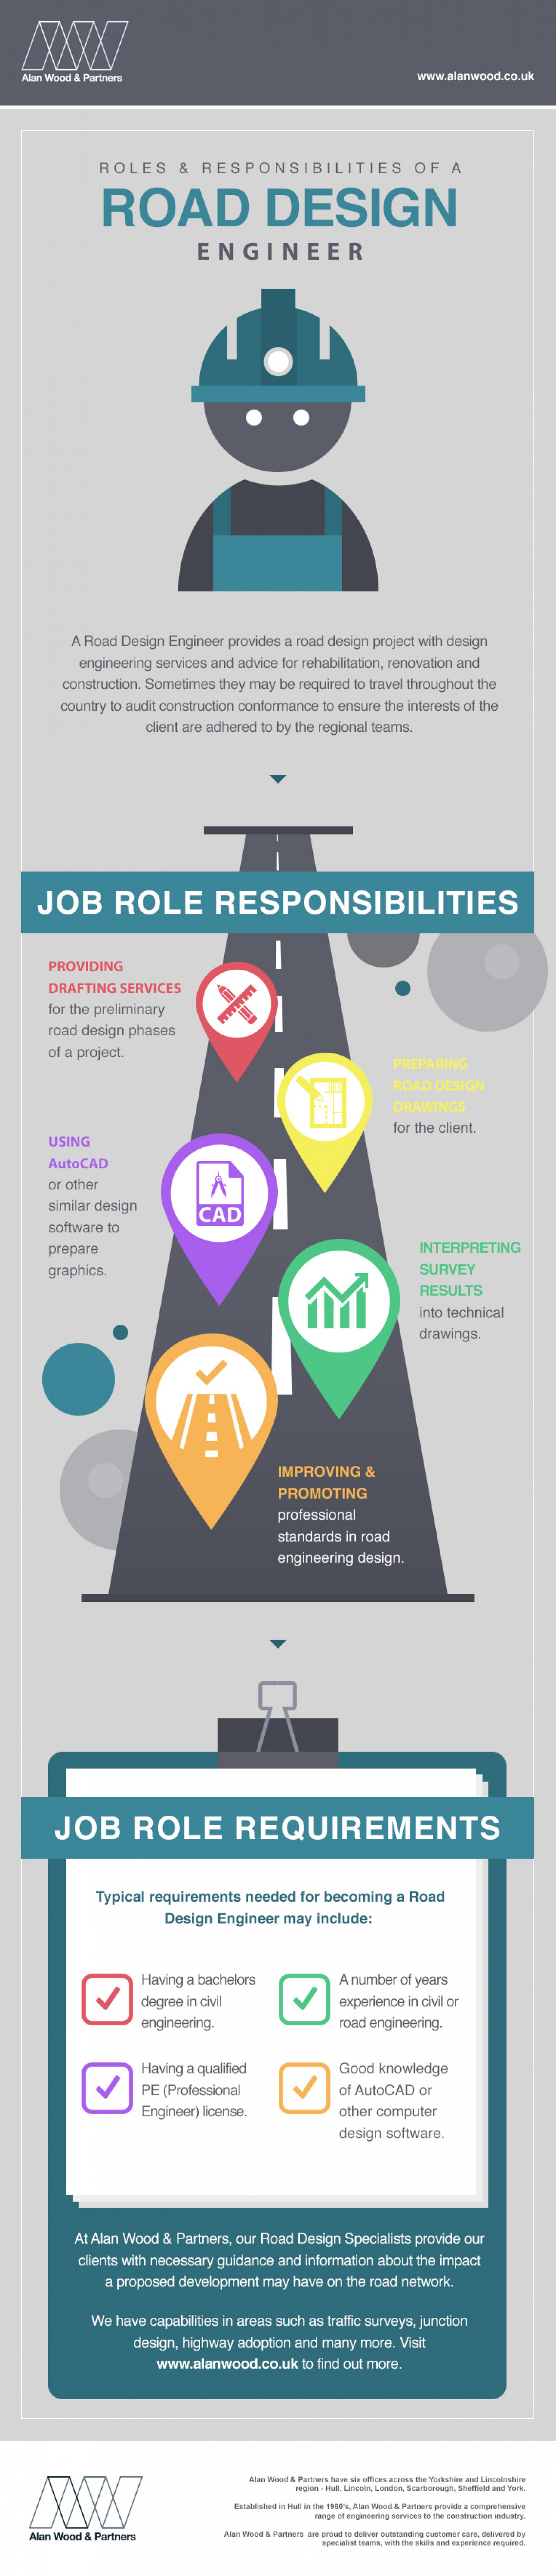 Roles and Responsibilities of a Road Design Engineer Infographic